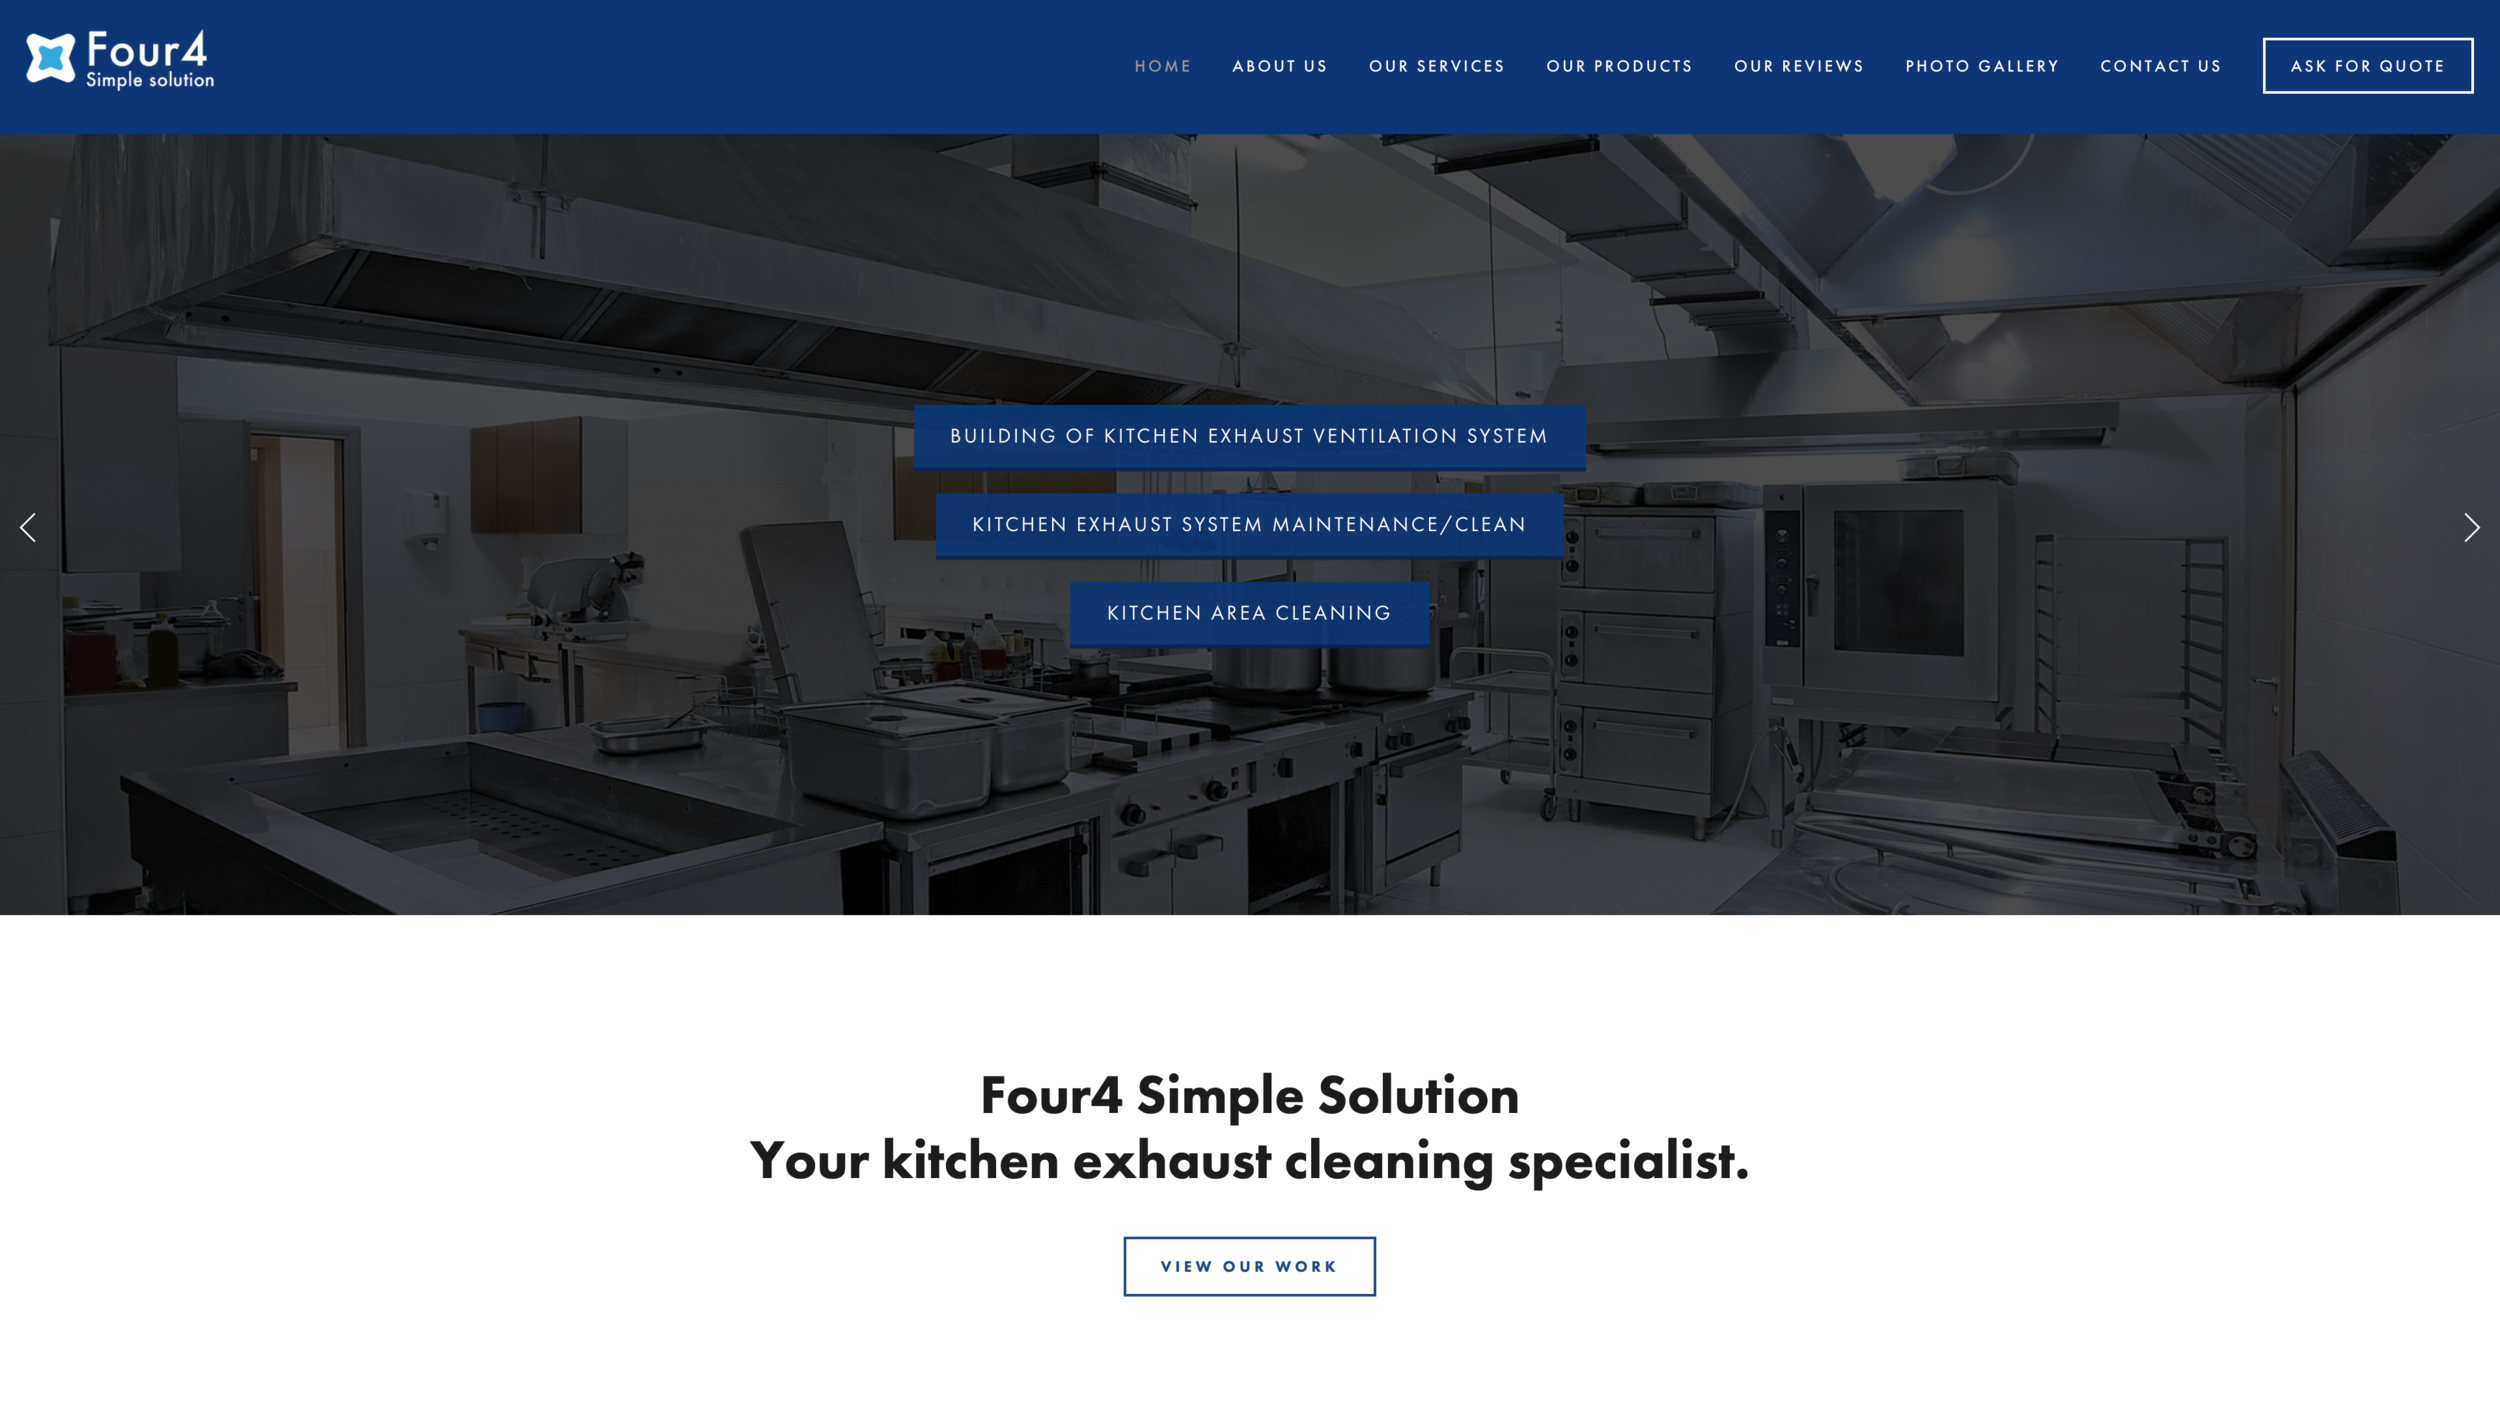 Four4 solutions - Established in 2018, they had a simple vision. No one should be denied of a safe and clean kitchen environment .With that vision in mind, Four4 Simple Solutions embarked on a journey to provide quality kitchen services to all business owners out there. Ranging from customization of new exhaust system to the installation of fire suppression systems, Four4 Simple solution is your one-stop kitchen-related solution provider.